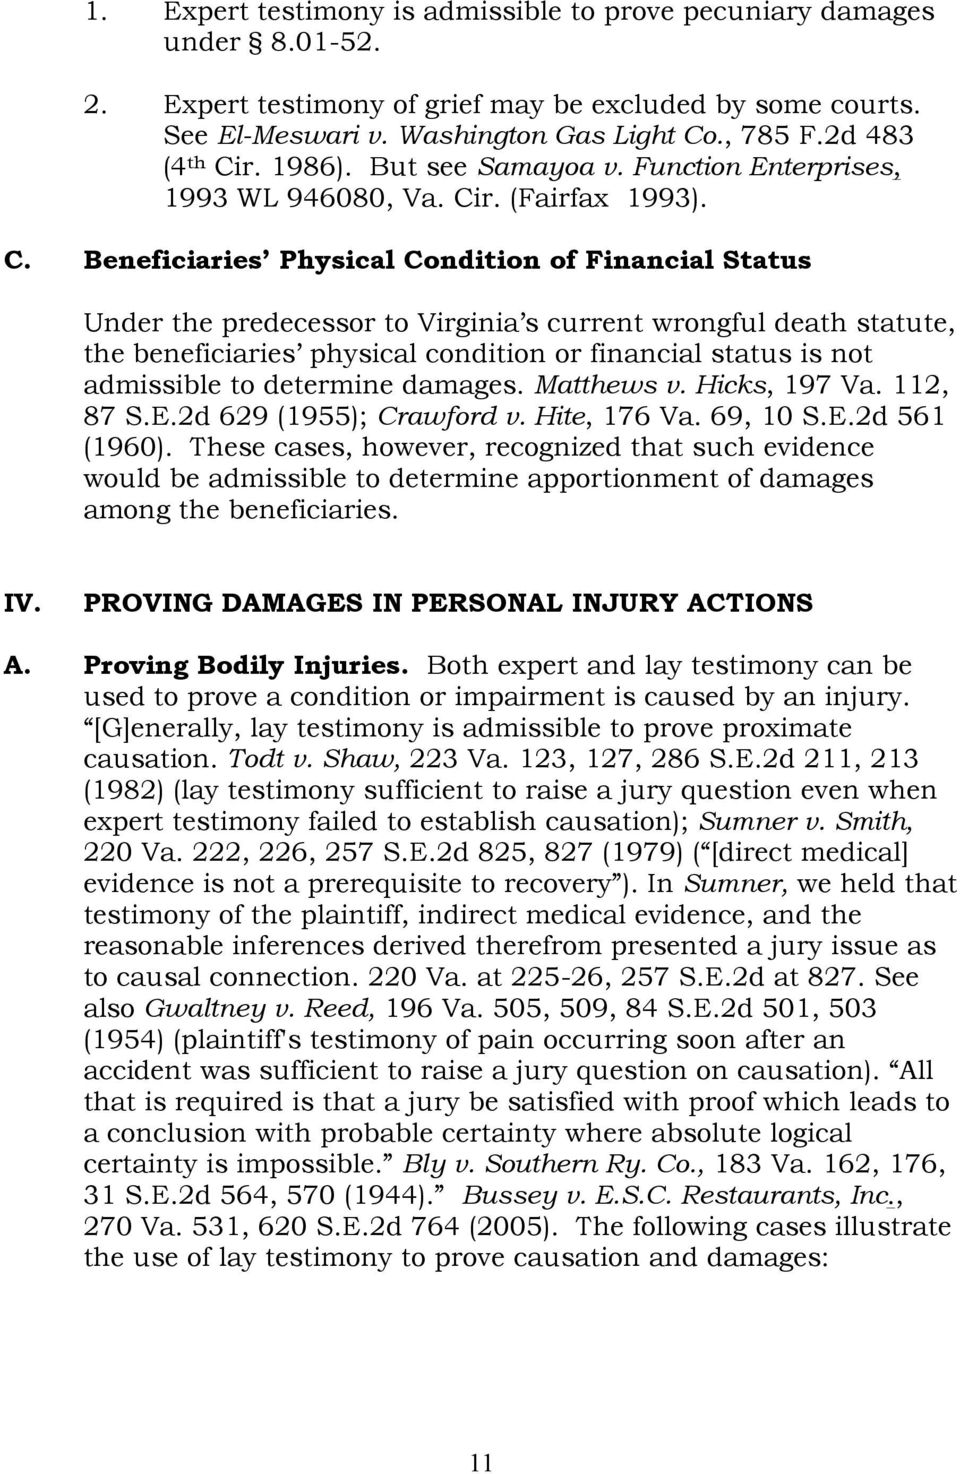 r. 1986). But see Samayoa v. Function Enterprises, 1993 WL 946080, Va. Ci